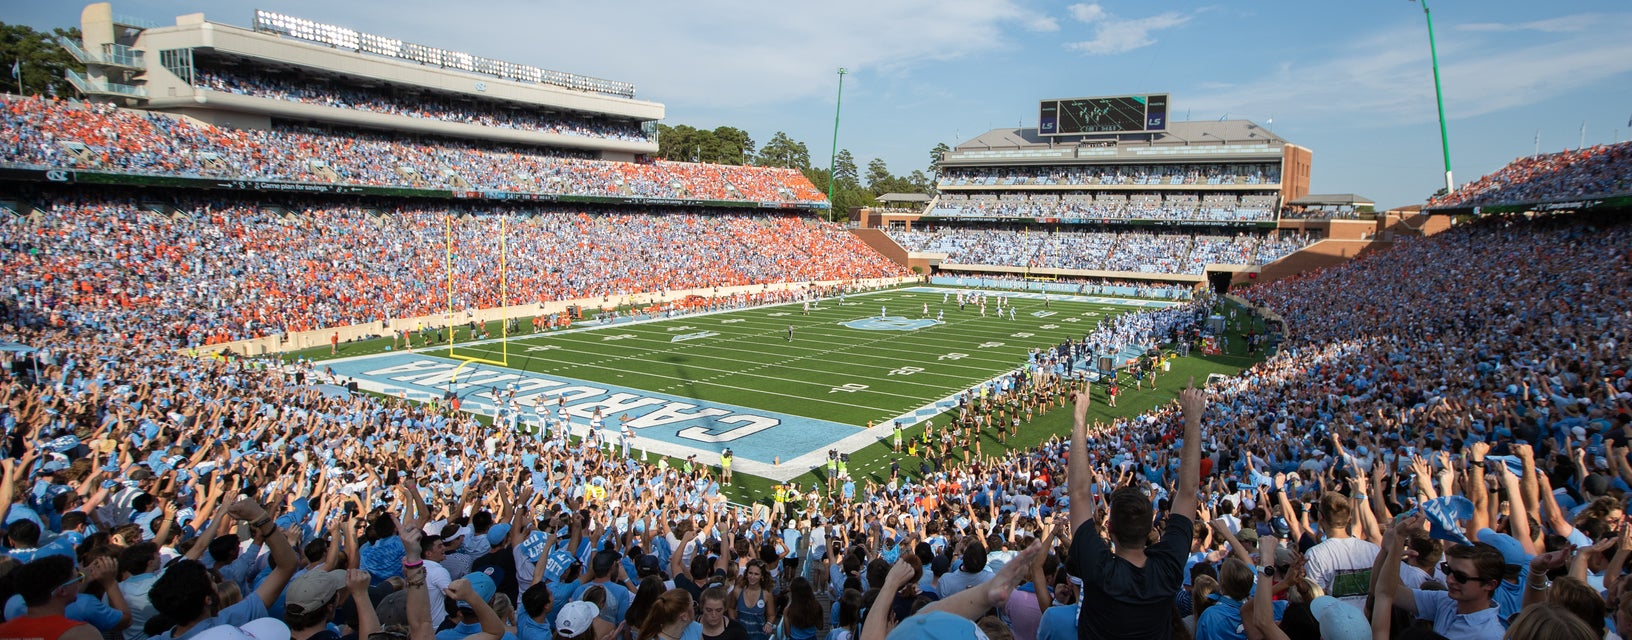 North Carolina Football Tickets